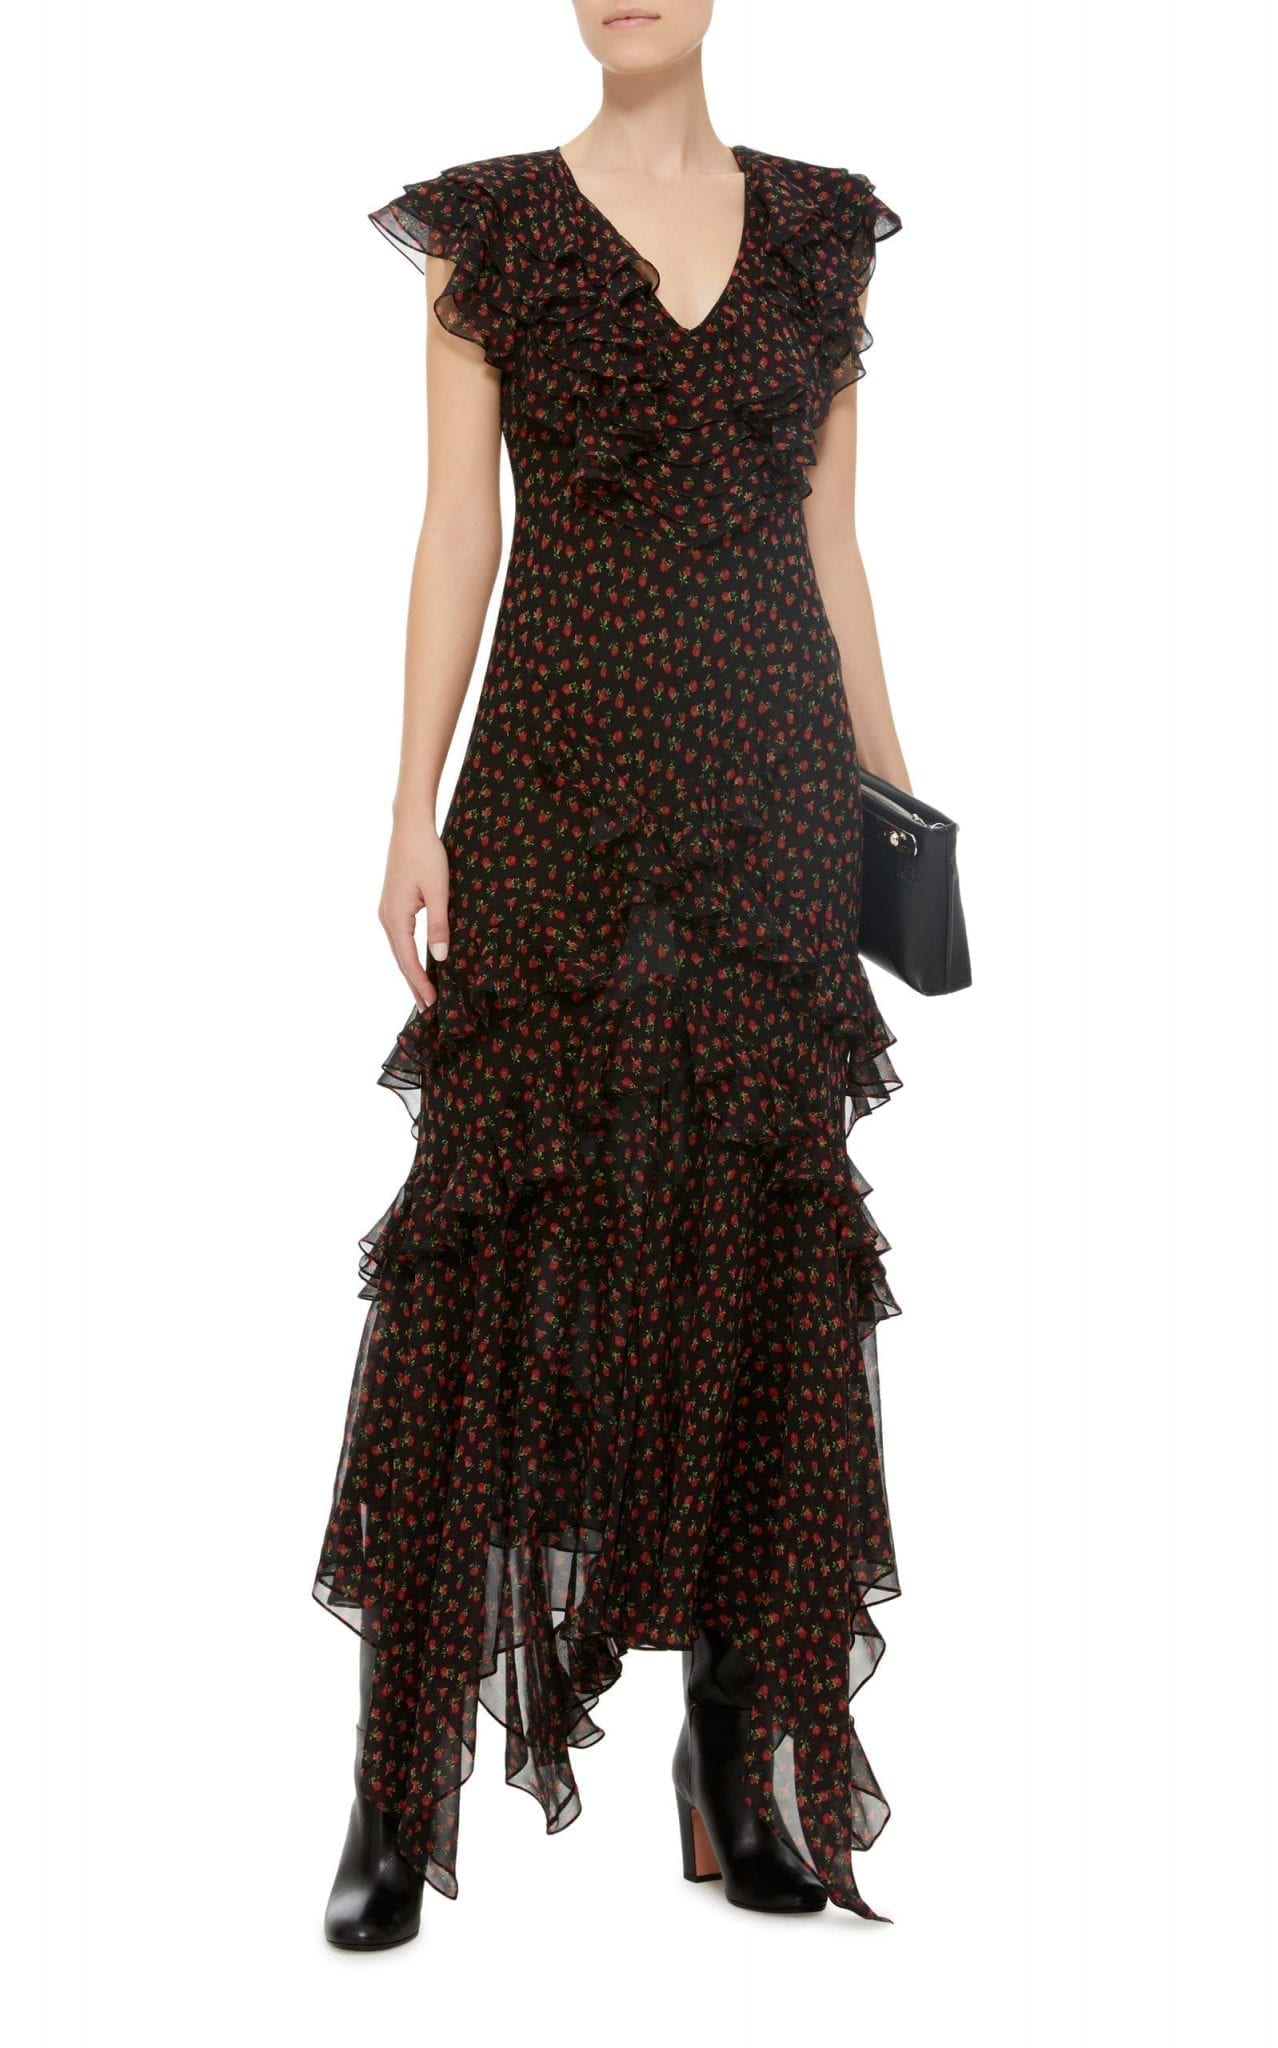 MICHAEL KORS COLLECTION Bias Ruffle Black / Floral Printed Dress